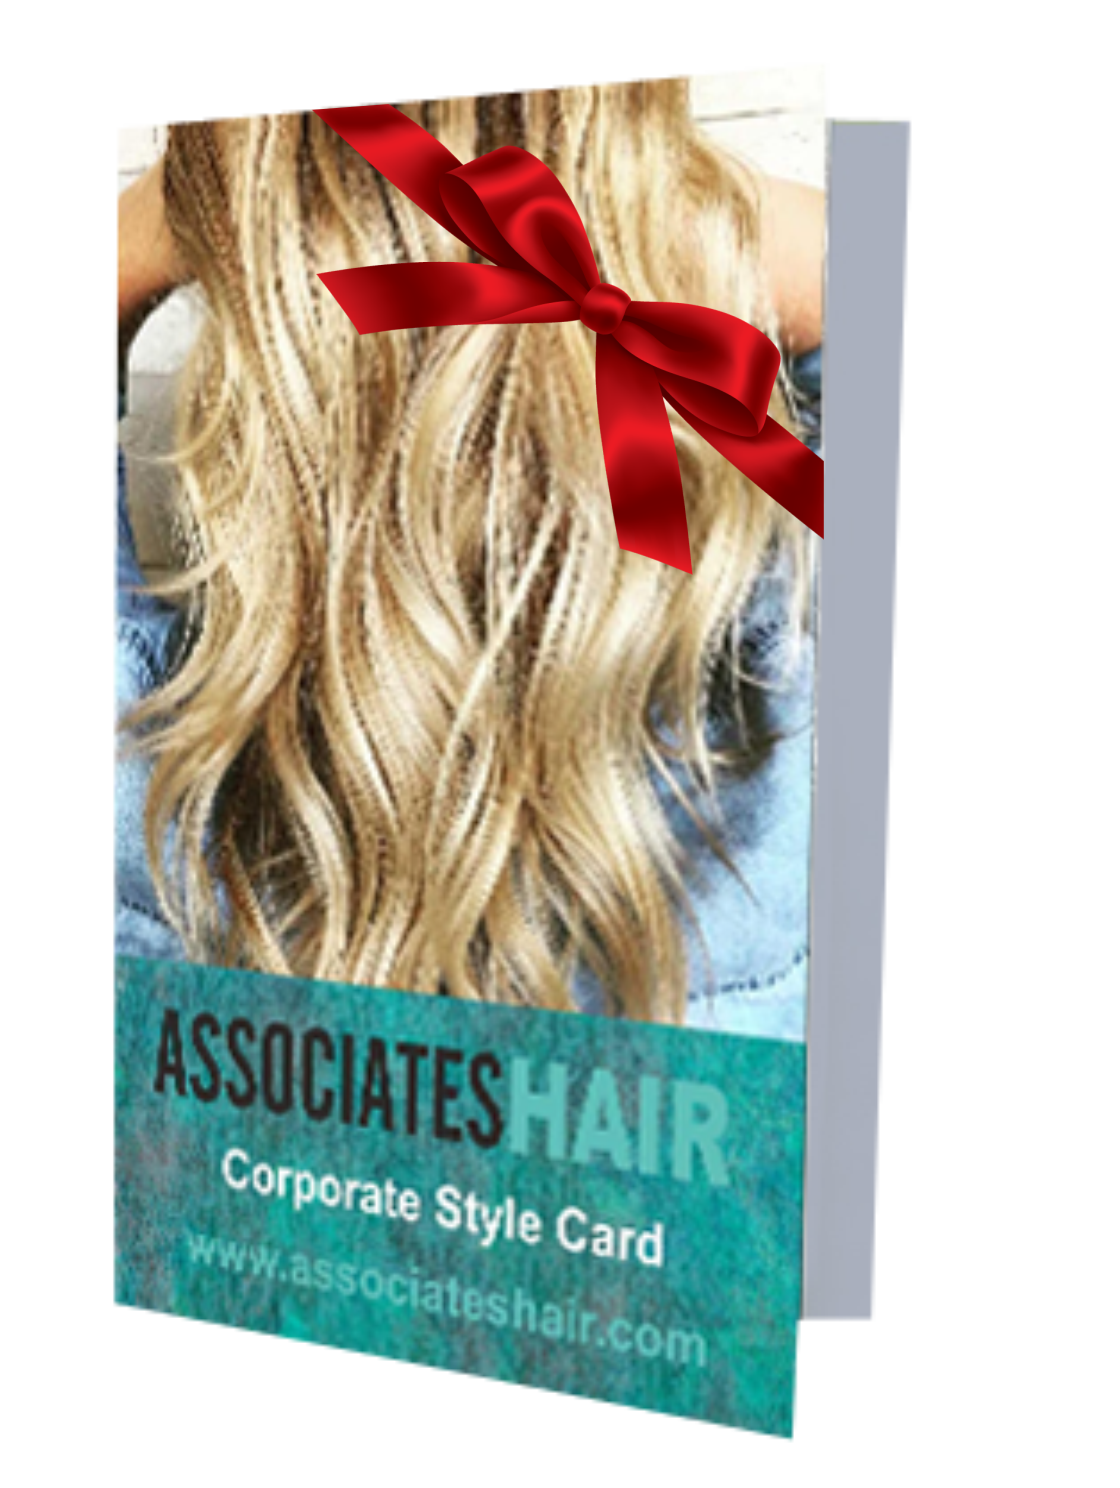 hairdresser offers Associates Hair